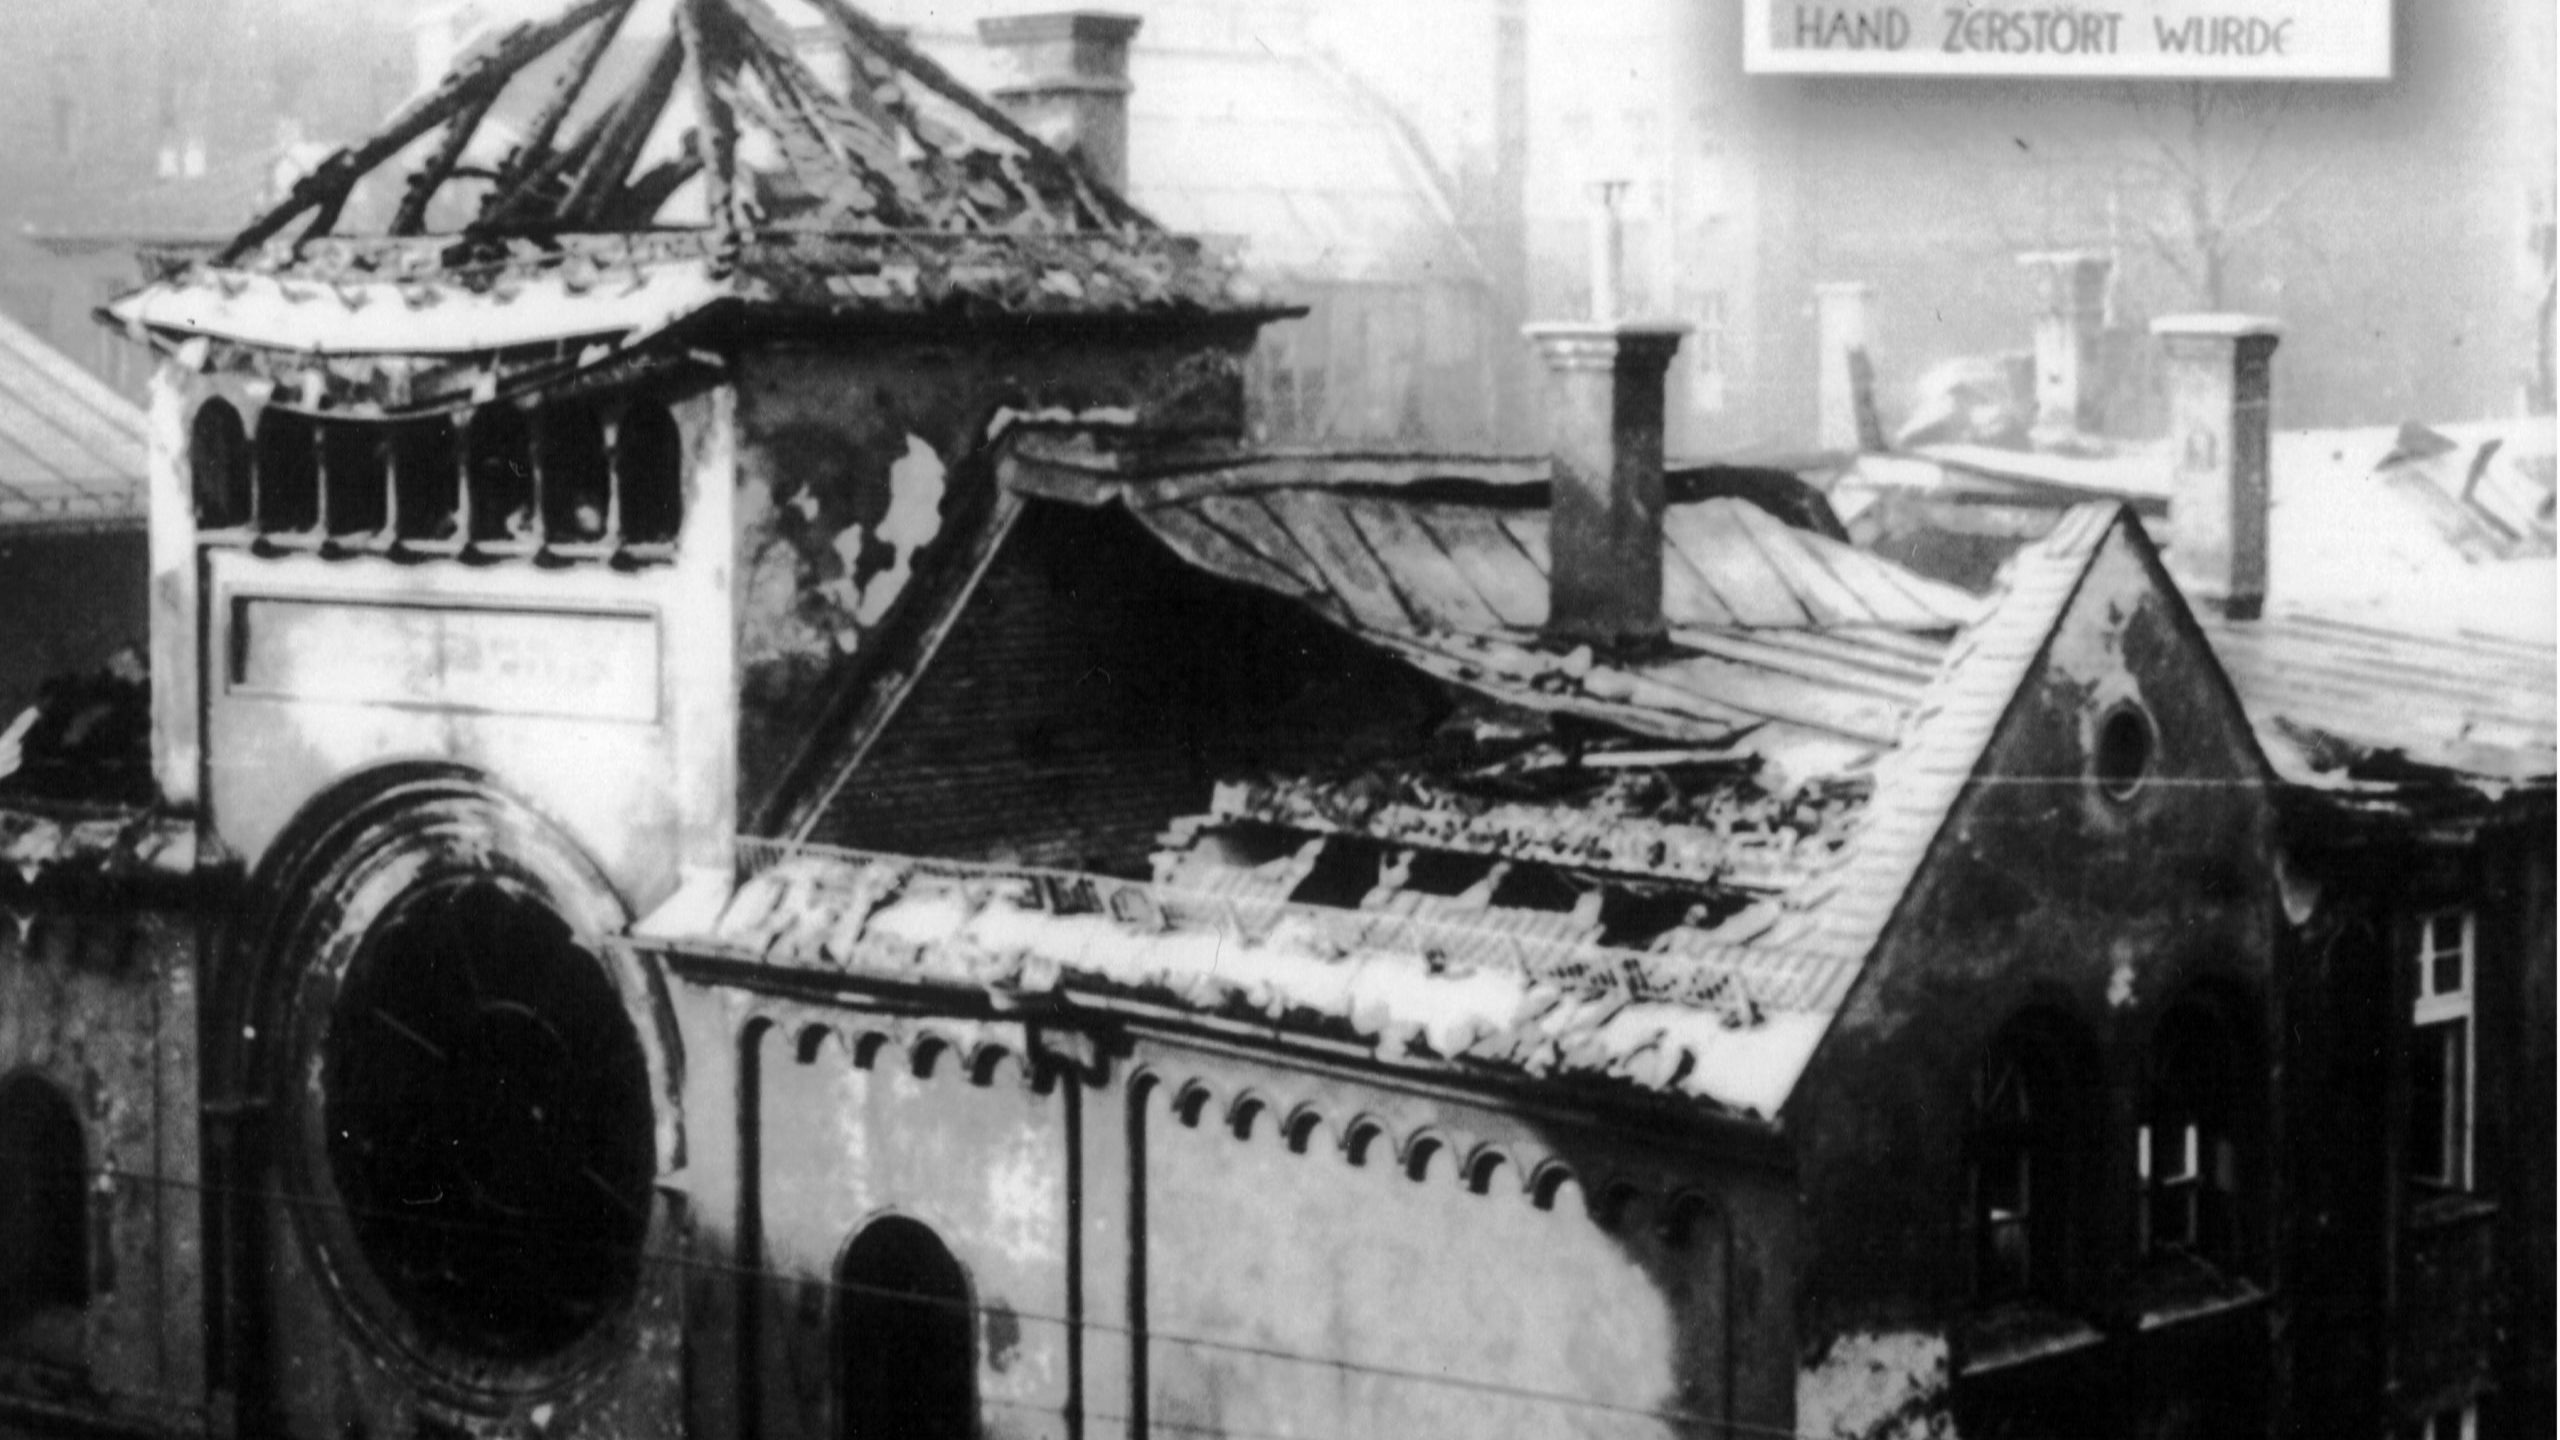 Rabbi Marc Schneier: World Leaders' Silence After Kristallnacht a 'Shameful Monument … to Moral Indifference' (AUDIO INTERVIEW)